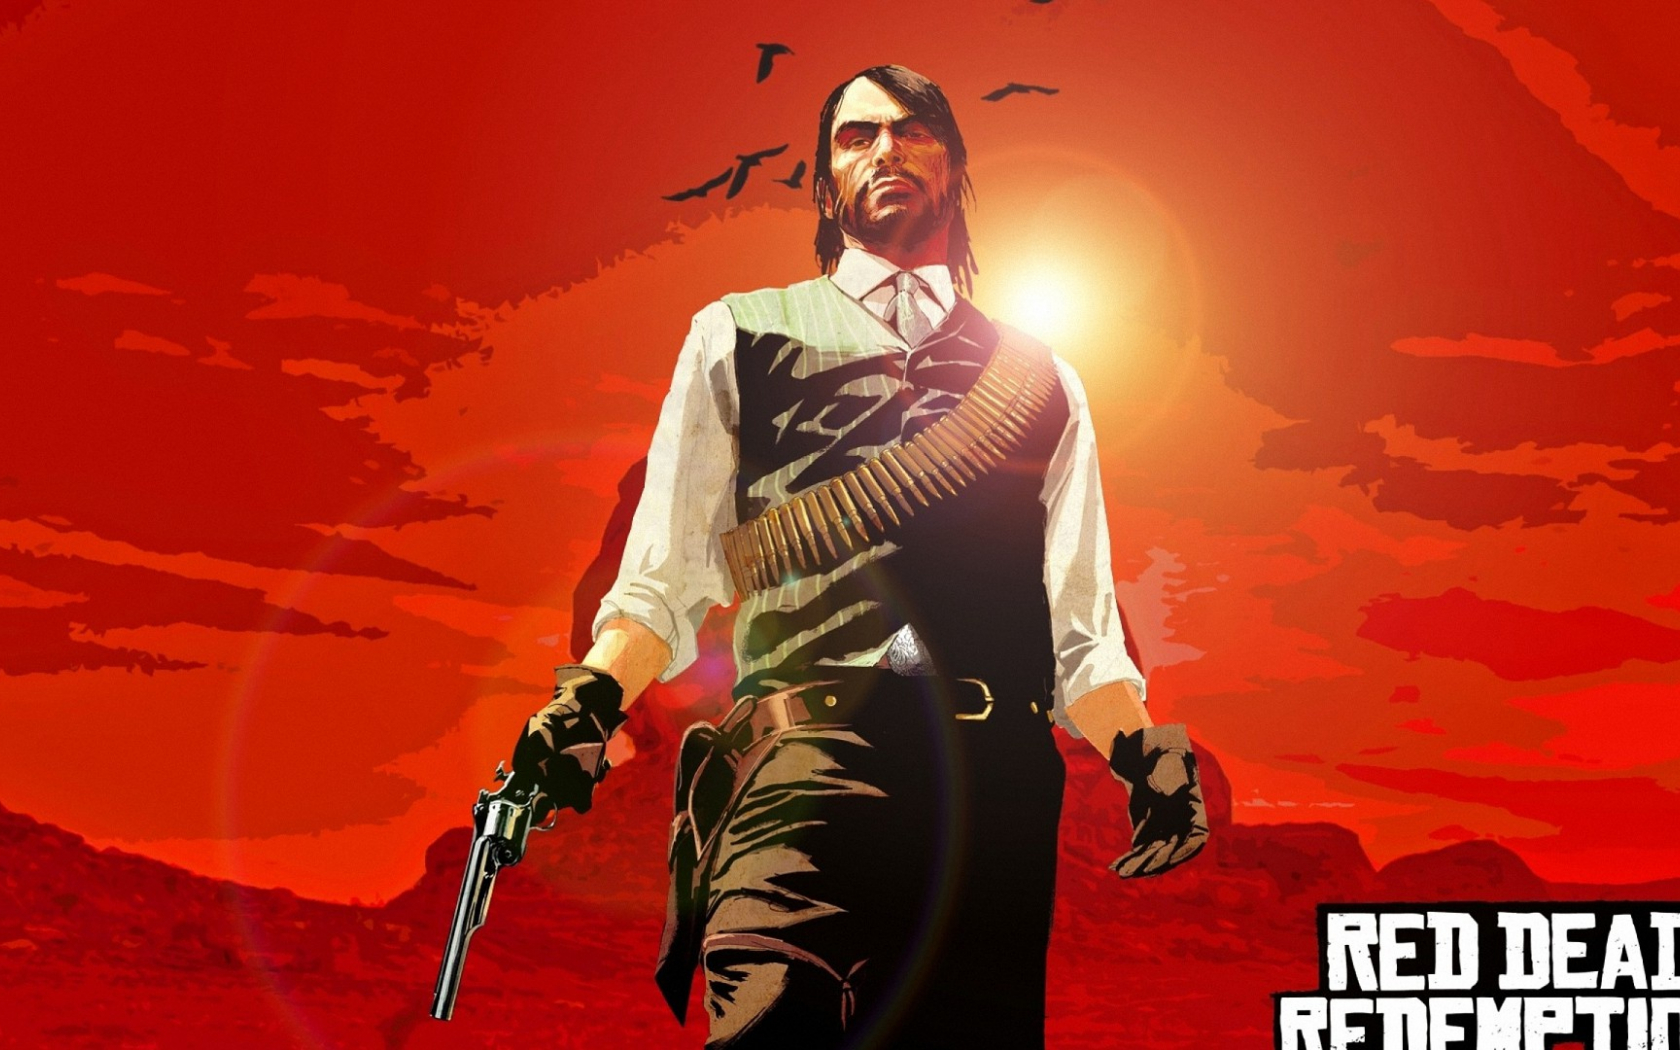 Free Download Red Dead Redemption John Marston Hd Wallpapers